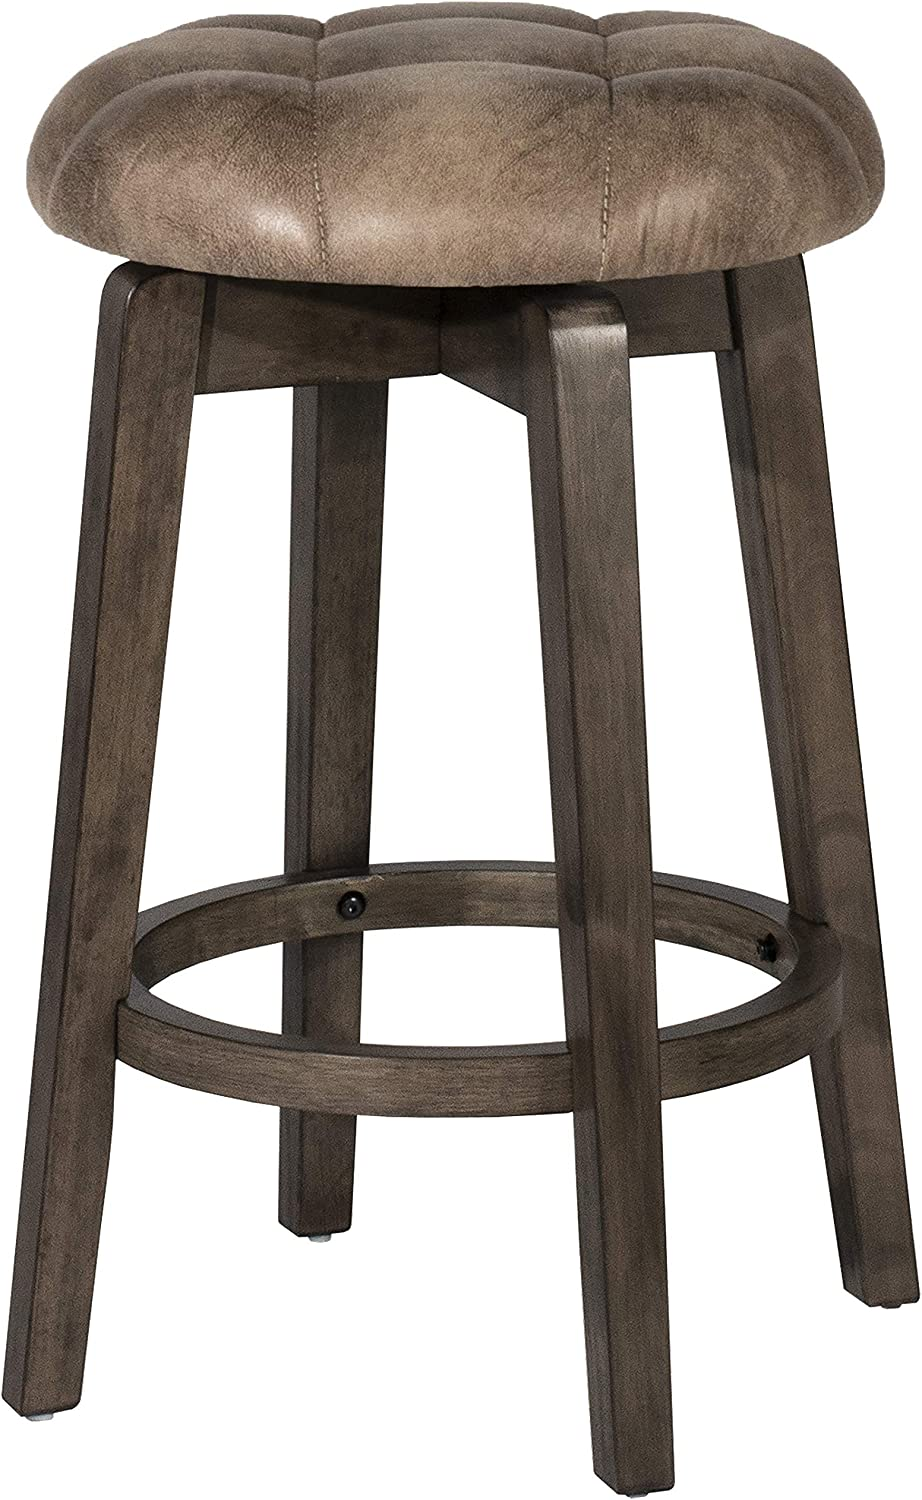 Hillsdale Furniture Odette Backless Swivel Counter Stool, Rustic Gray